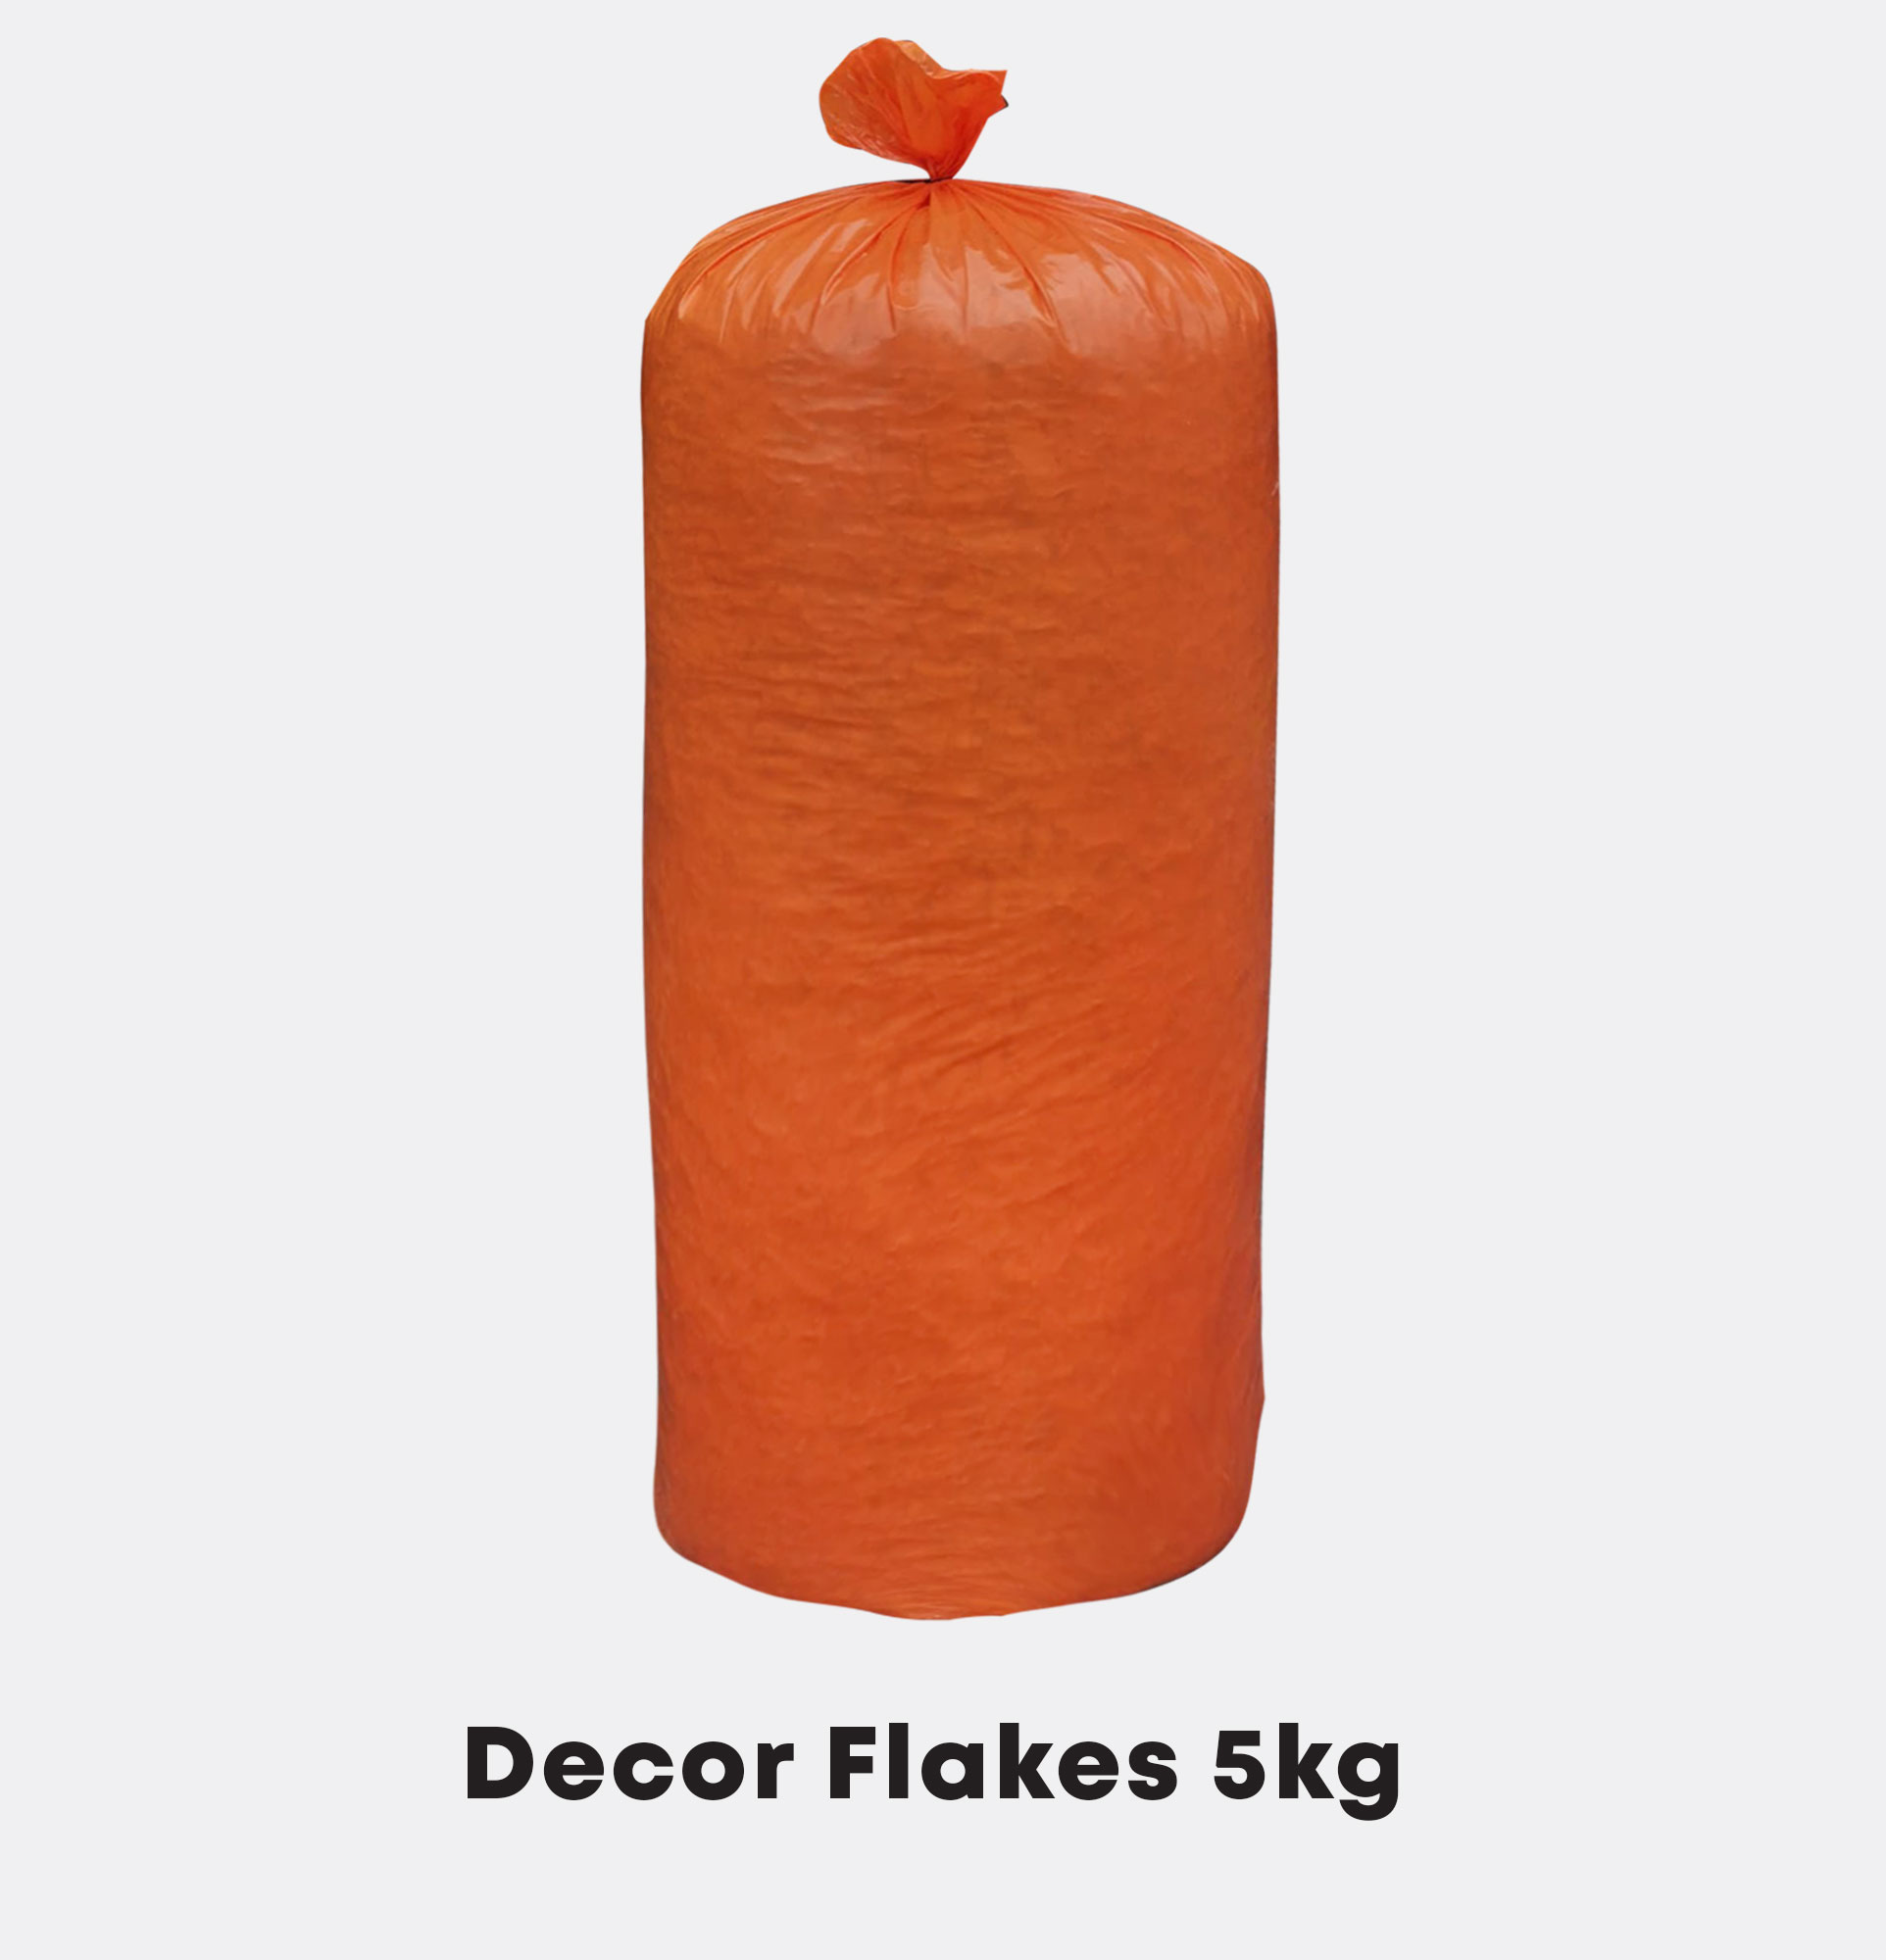 Decor Flakes Packaging